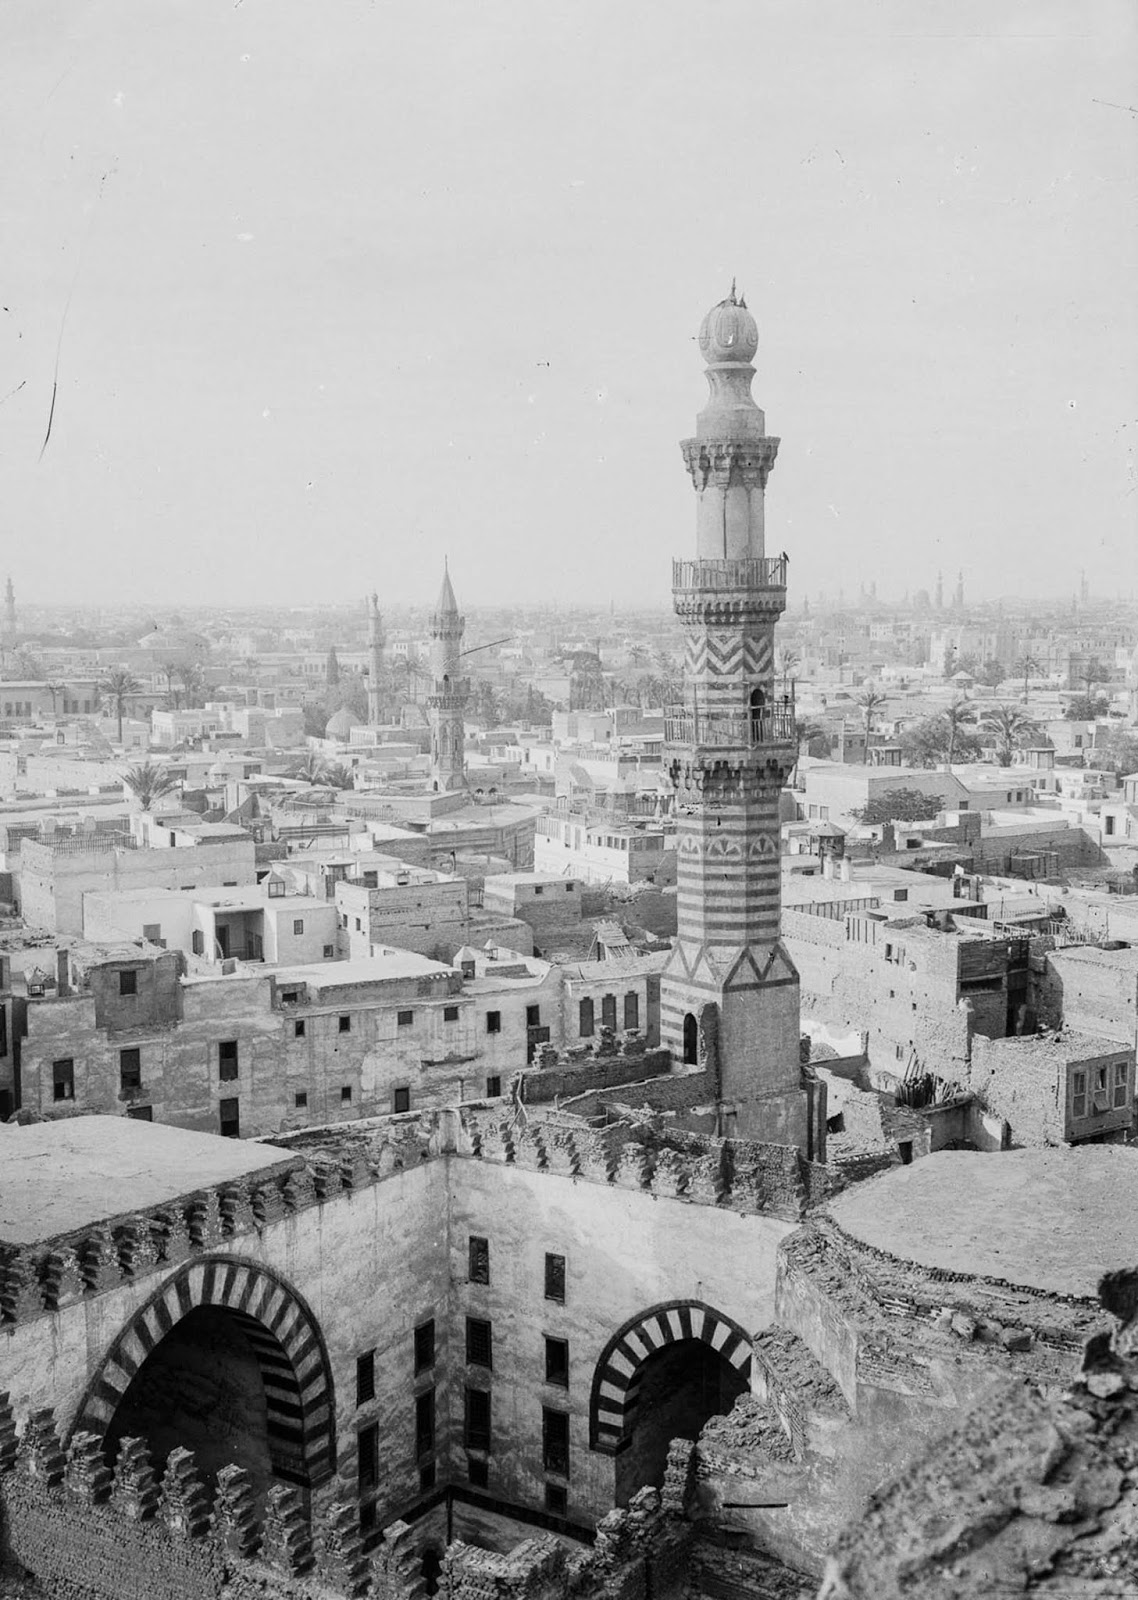 The view from the Mosque of Ibn Touloun. 1900.